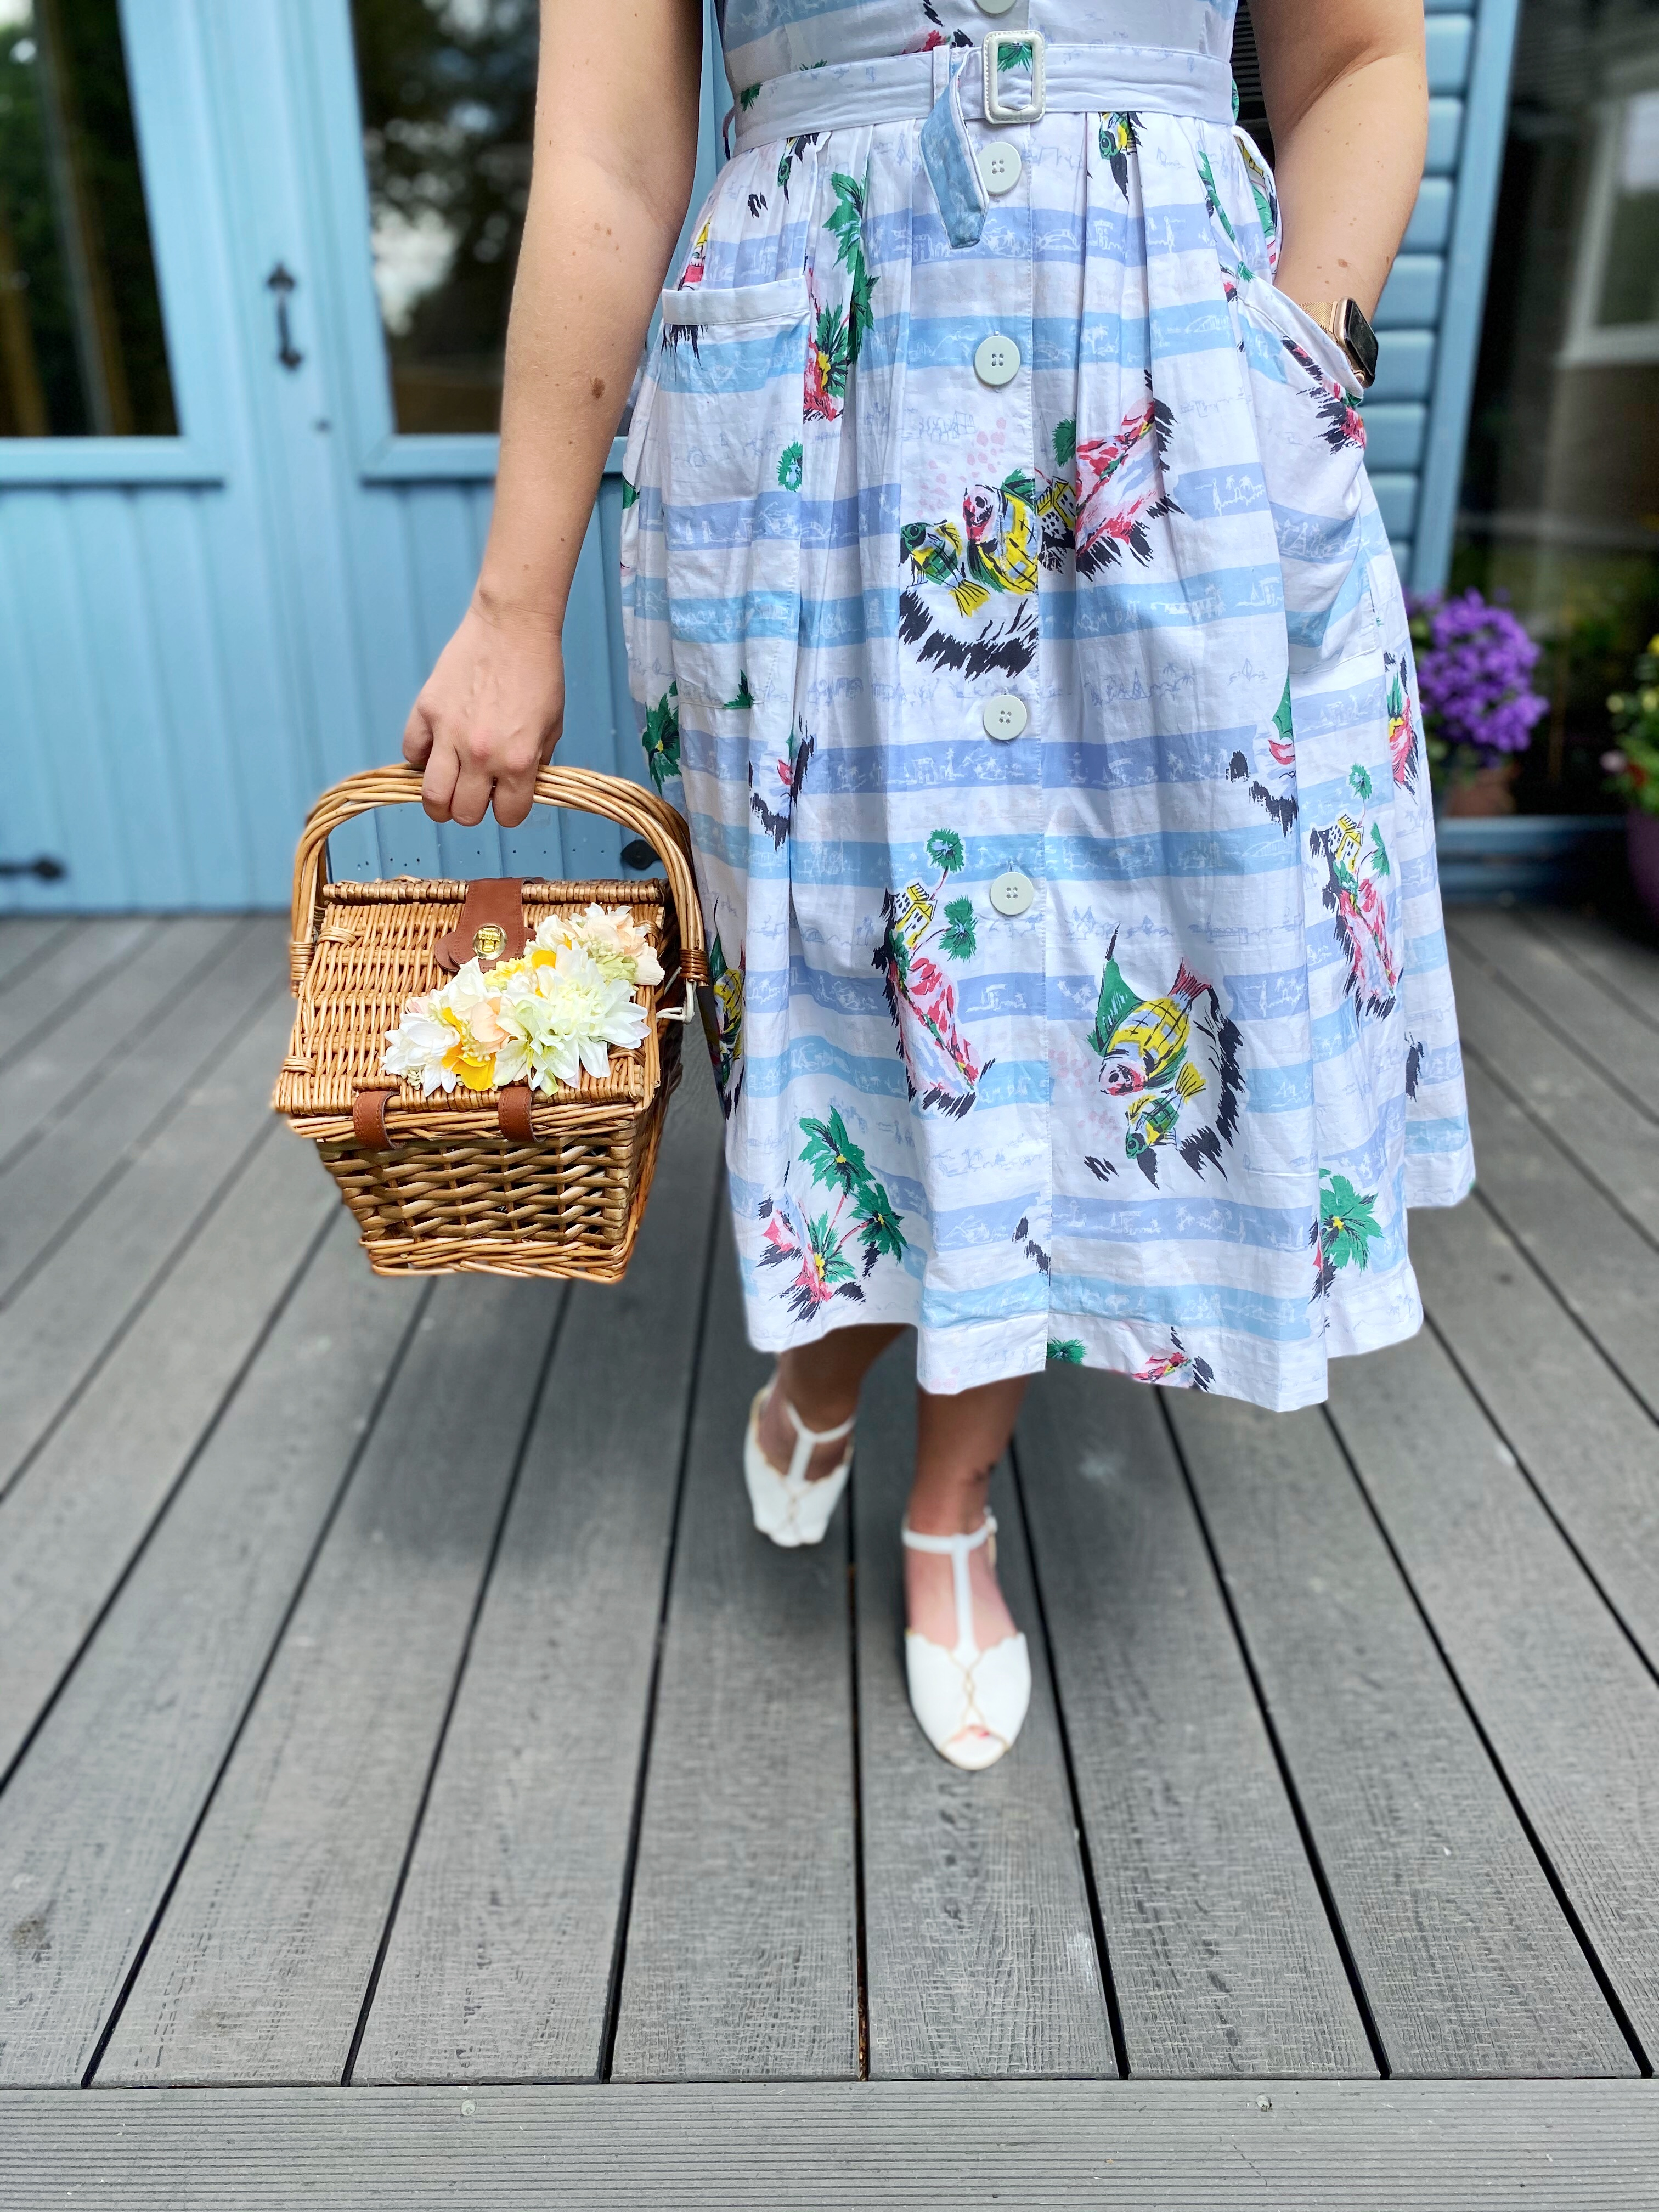 Sarah Vintage Basket from Classic Bags In Bloom